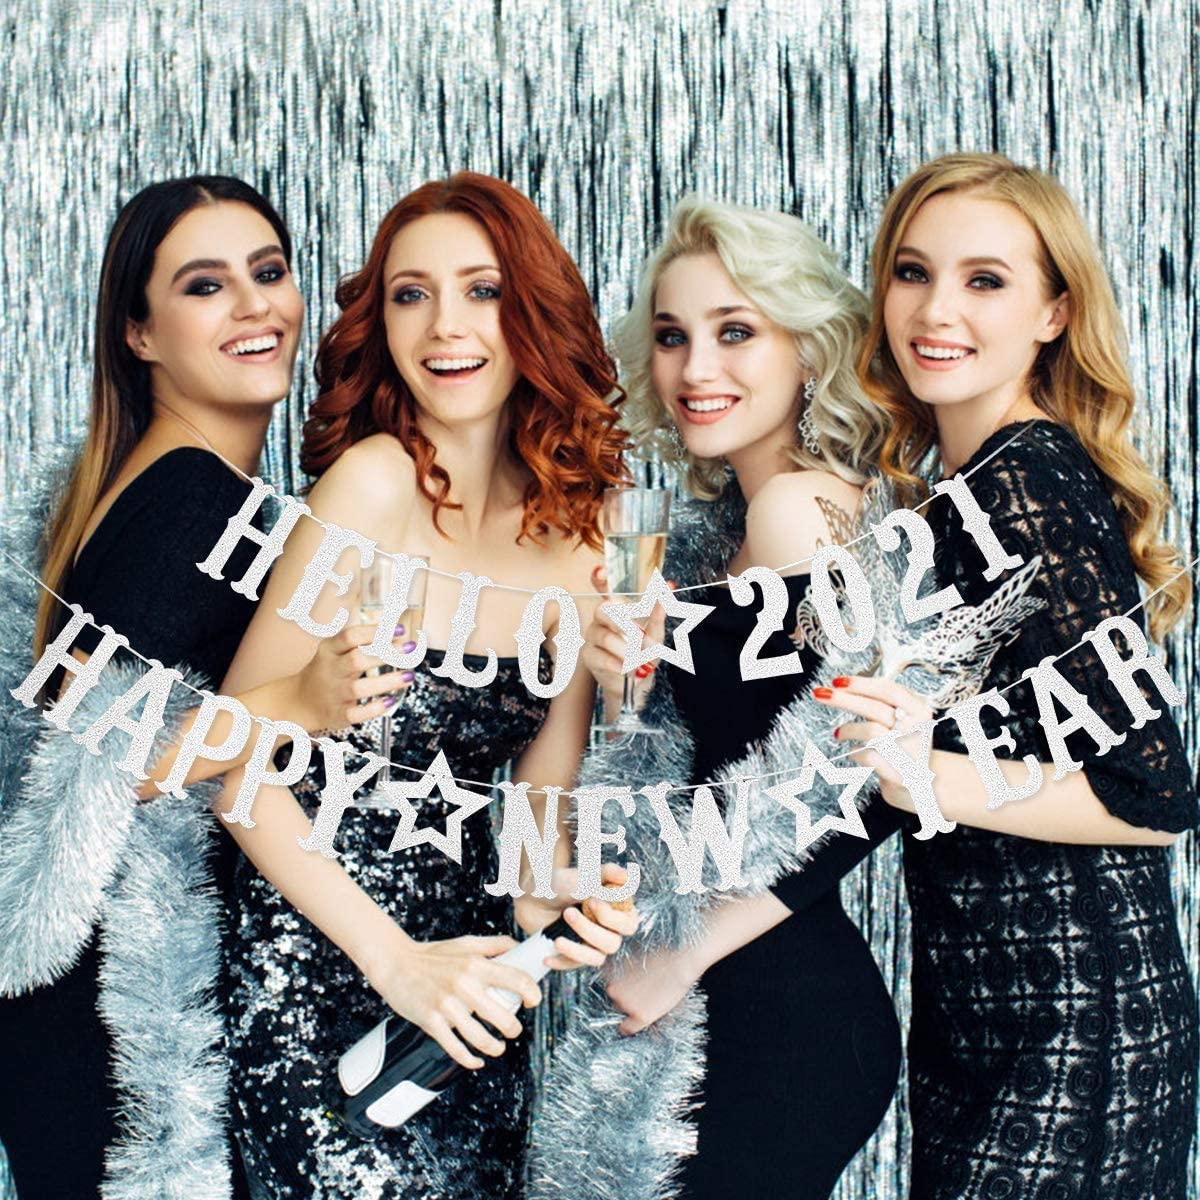 New Years Eve Party Supplies 2021 Silver Glittery Hello 2021 Banner and Silver Glittery Happy New Year Banner NYE Decorations 2021,Happy New Year Decorations 2021,New Years Decorations for Home Office Fireplace Mantel Farewell to 2020 and Welcome to 202